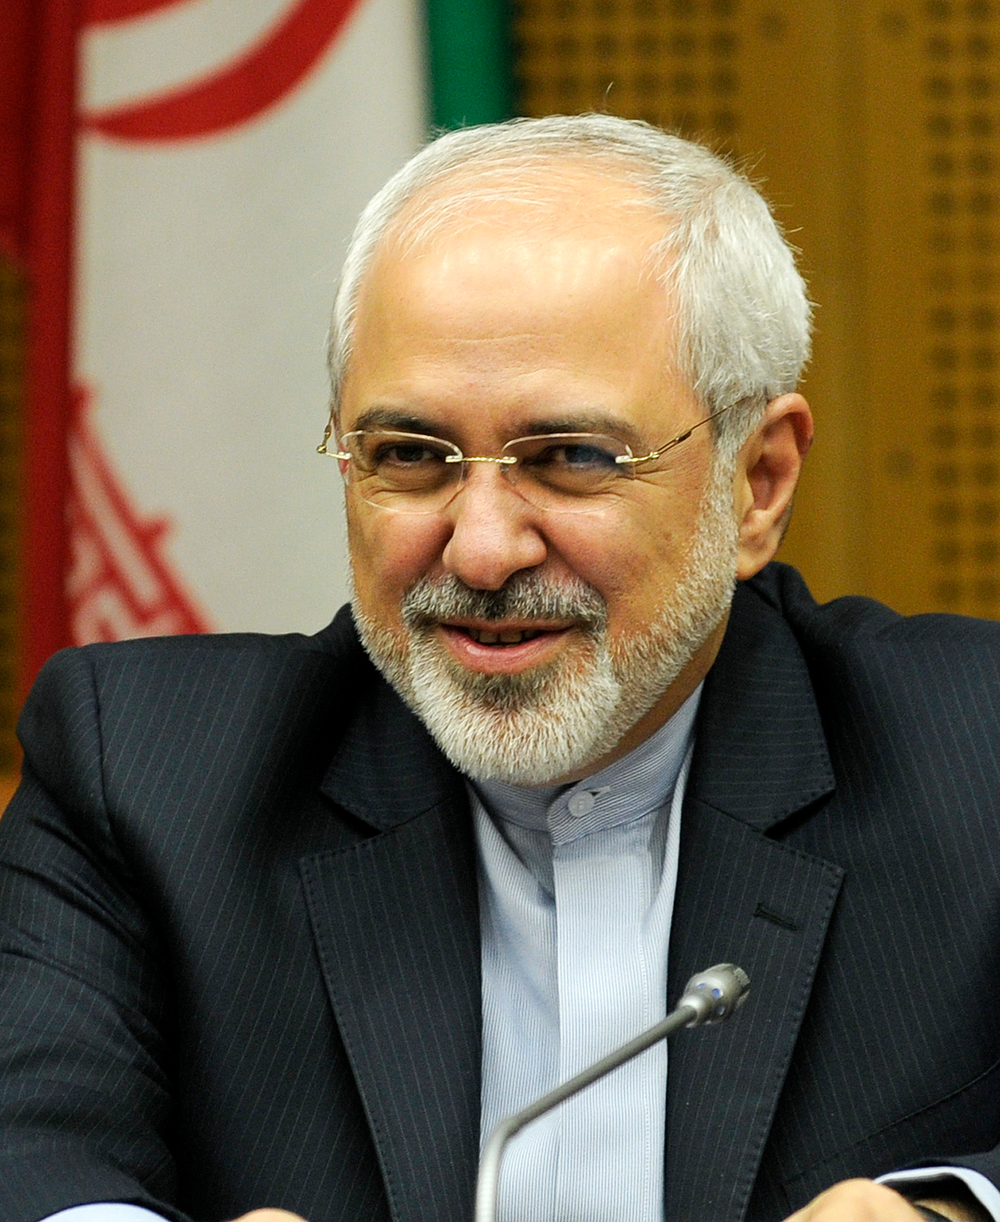 Iranian Foreign Minister Mohammad Javad Zarif. Credit: Wikimedia Commons.